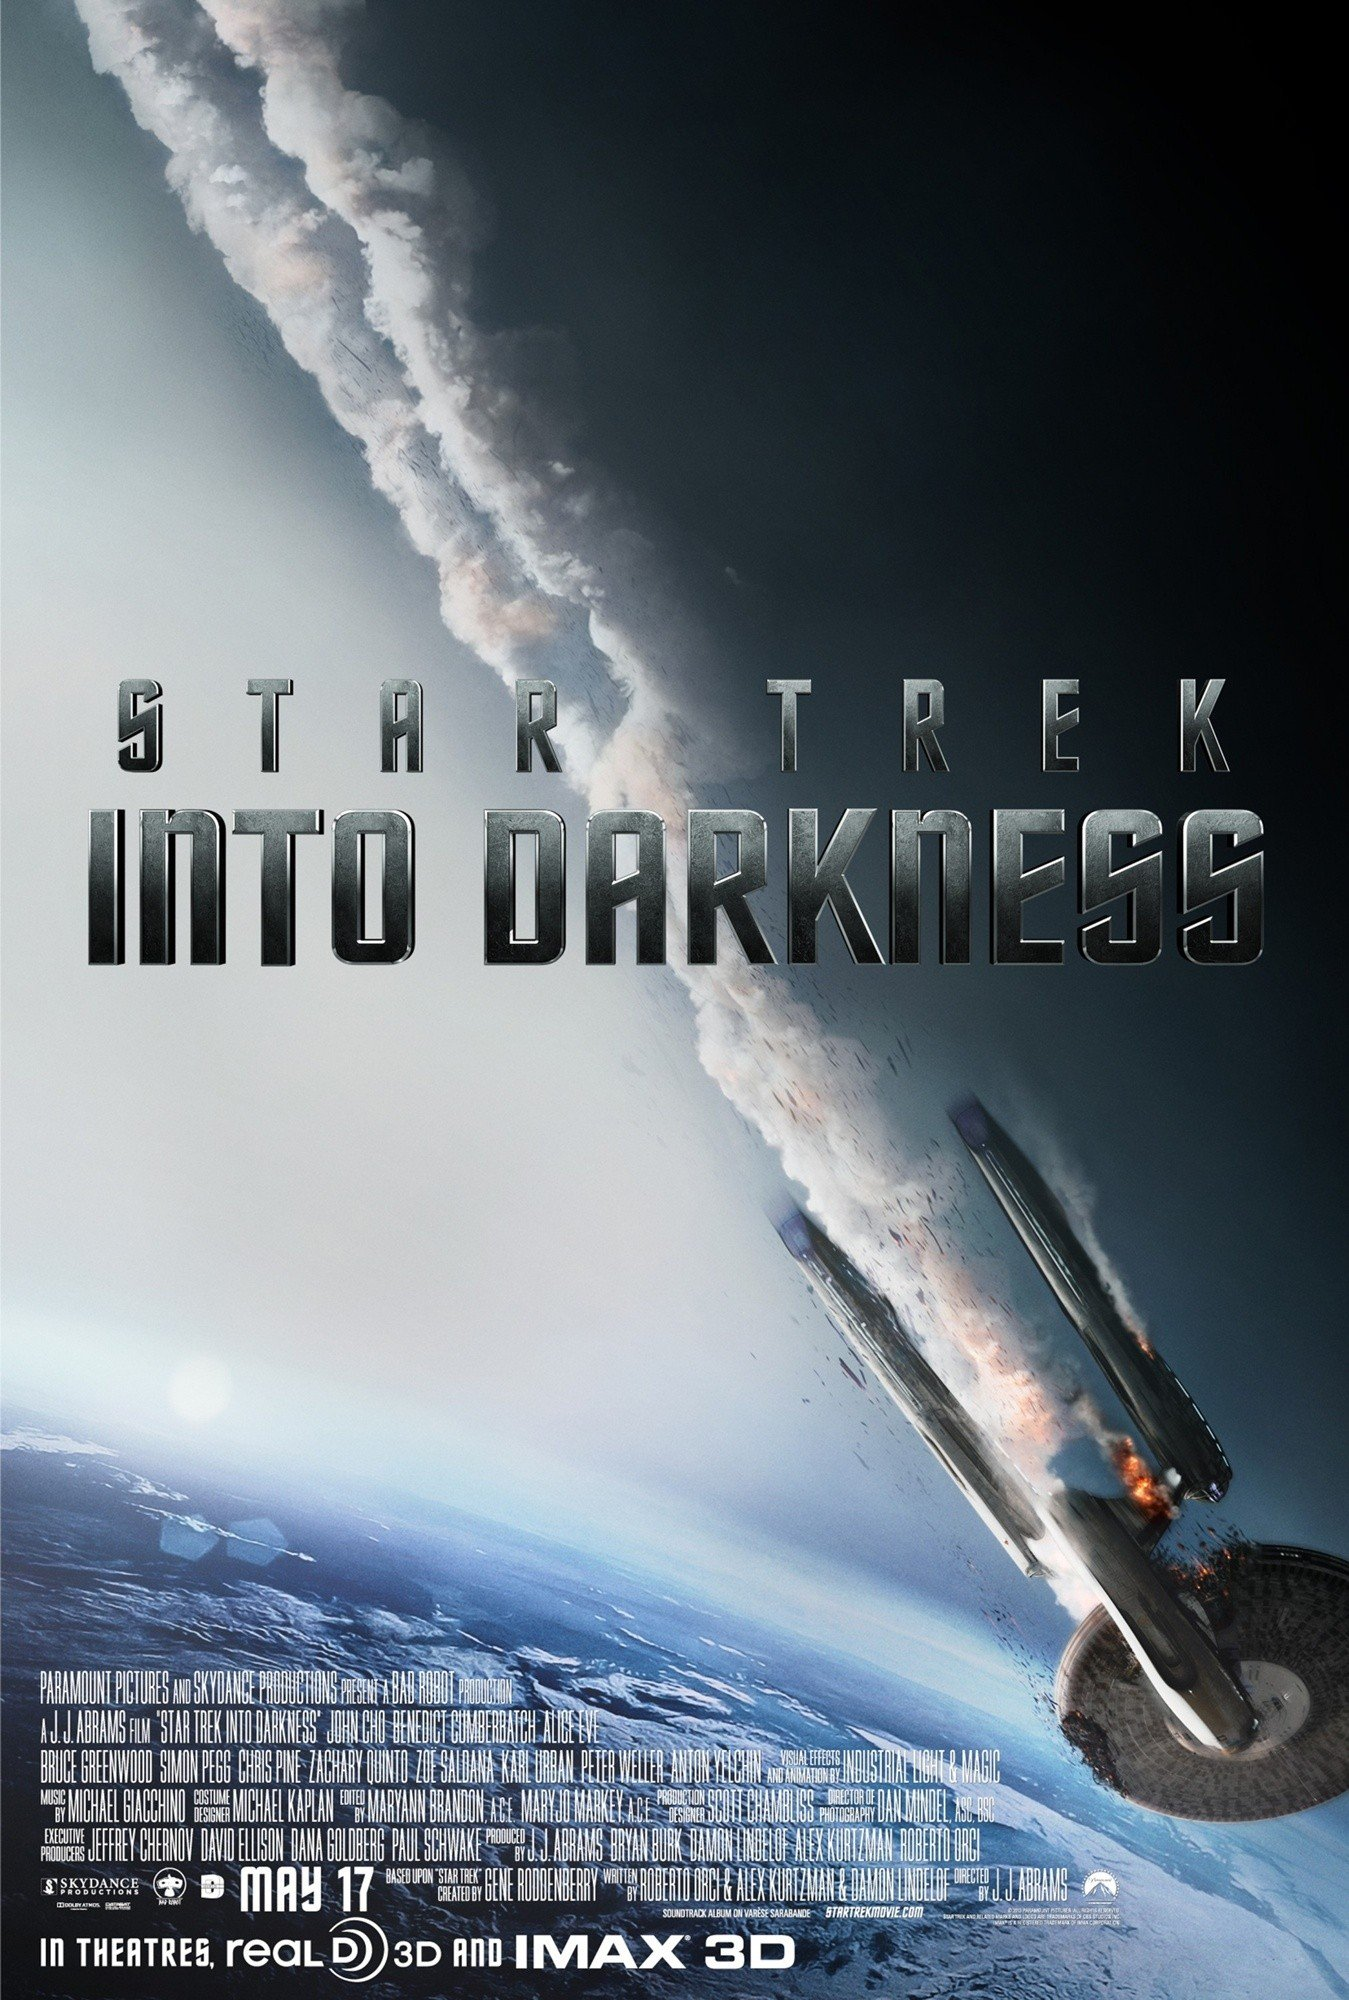 https://i2.wp.com/www.aceshowbiz.com/images/still/star-trek-into-darkness-pstr04.jpg